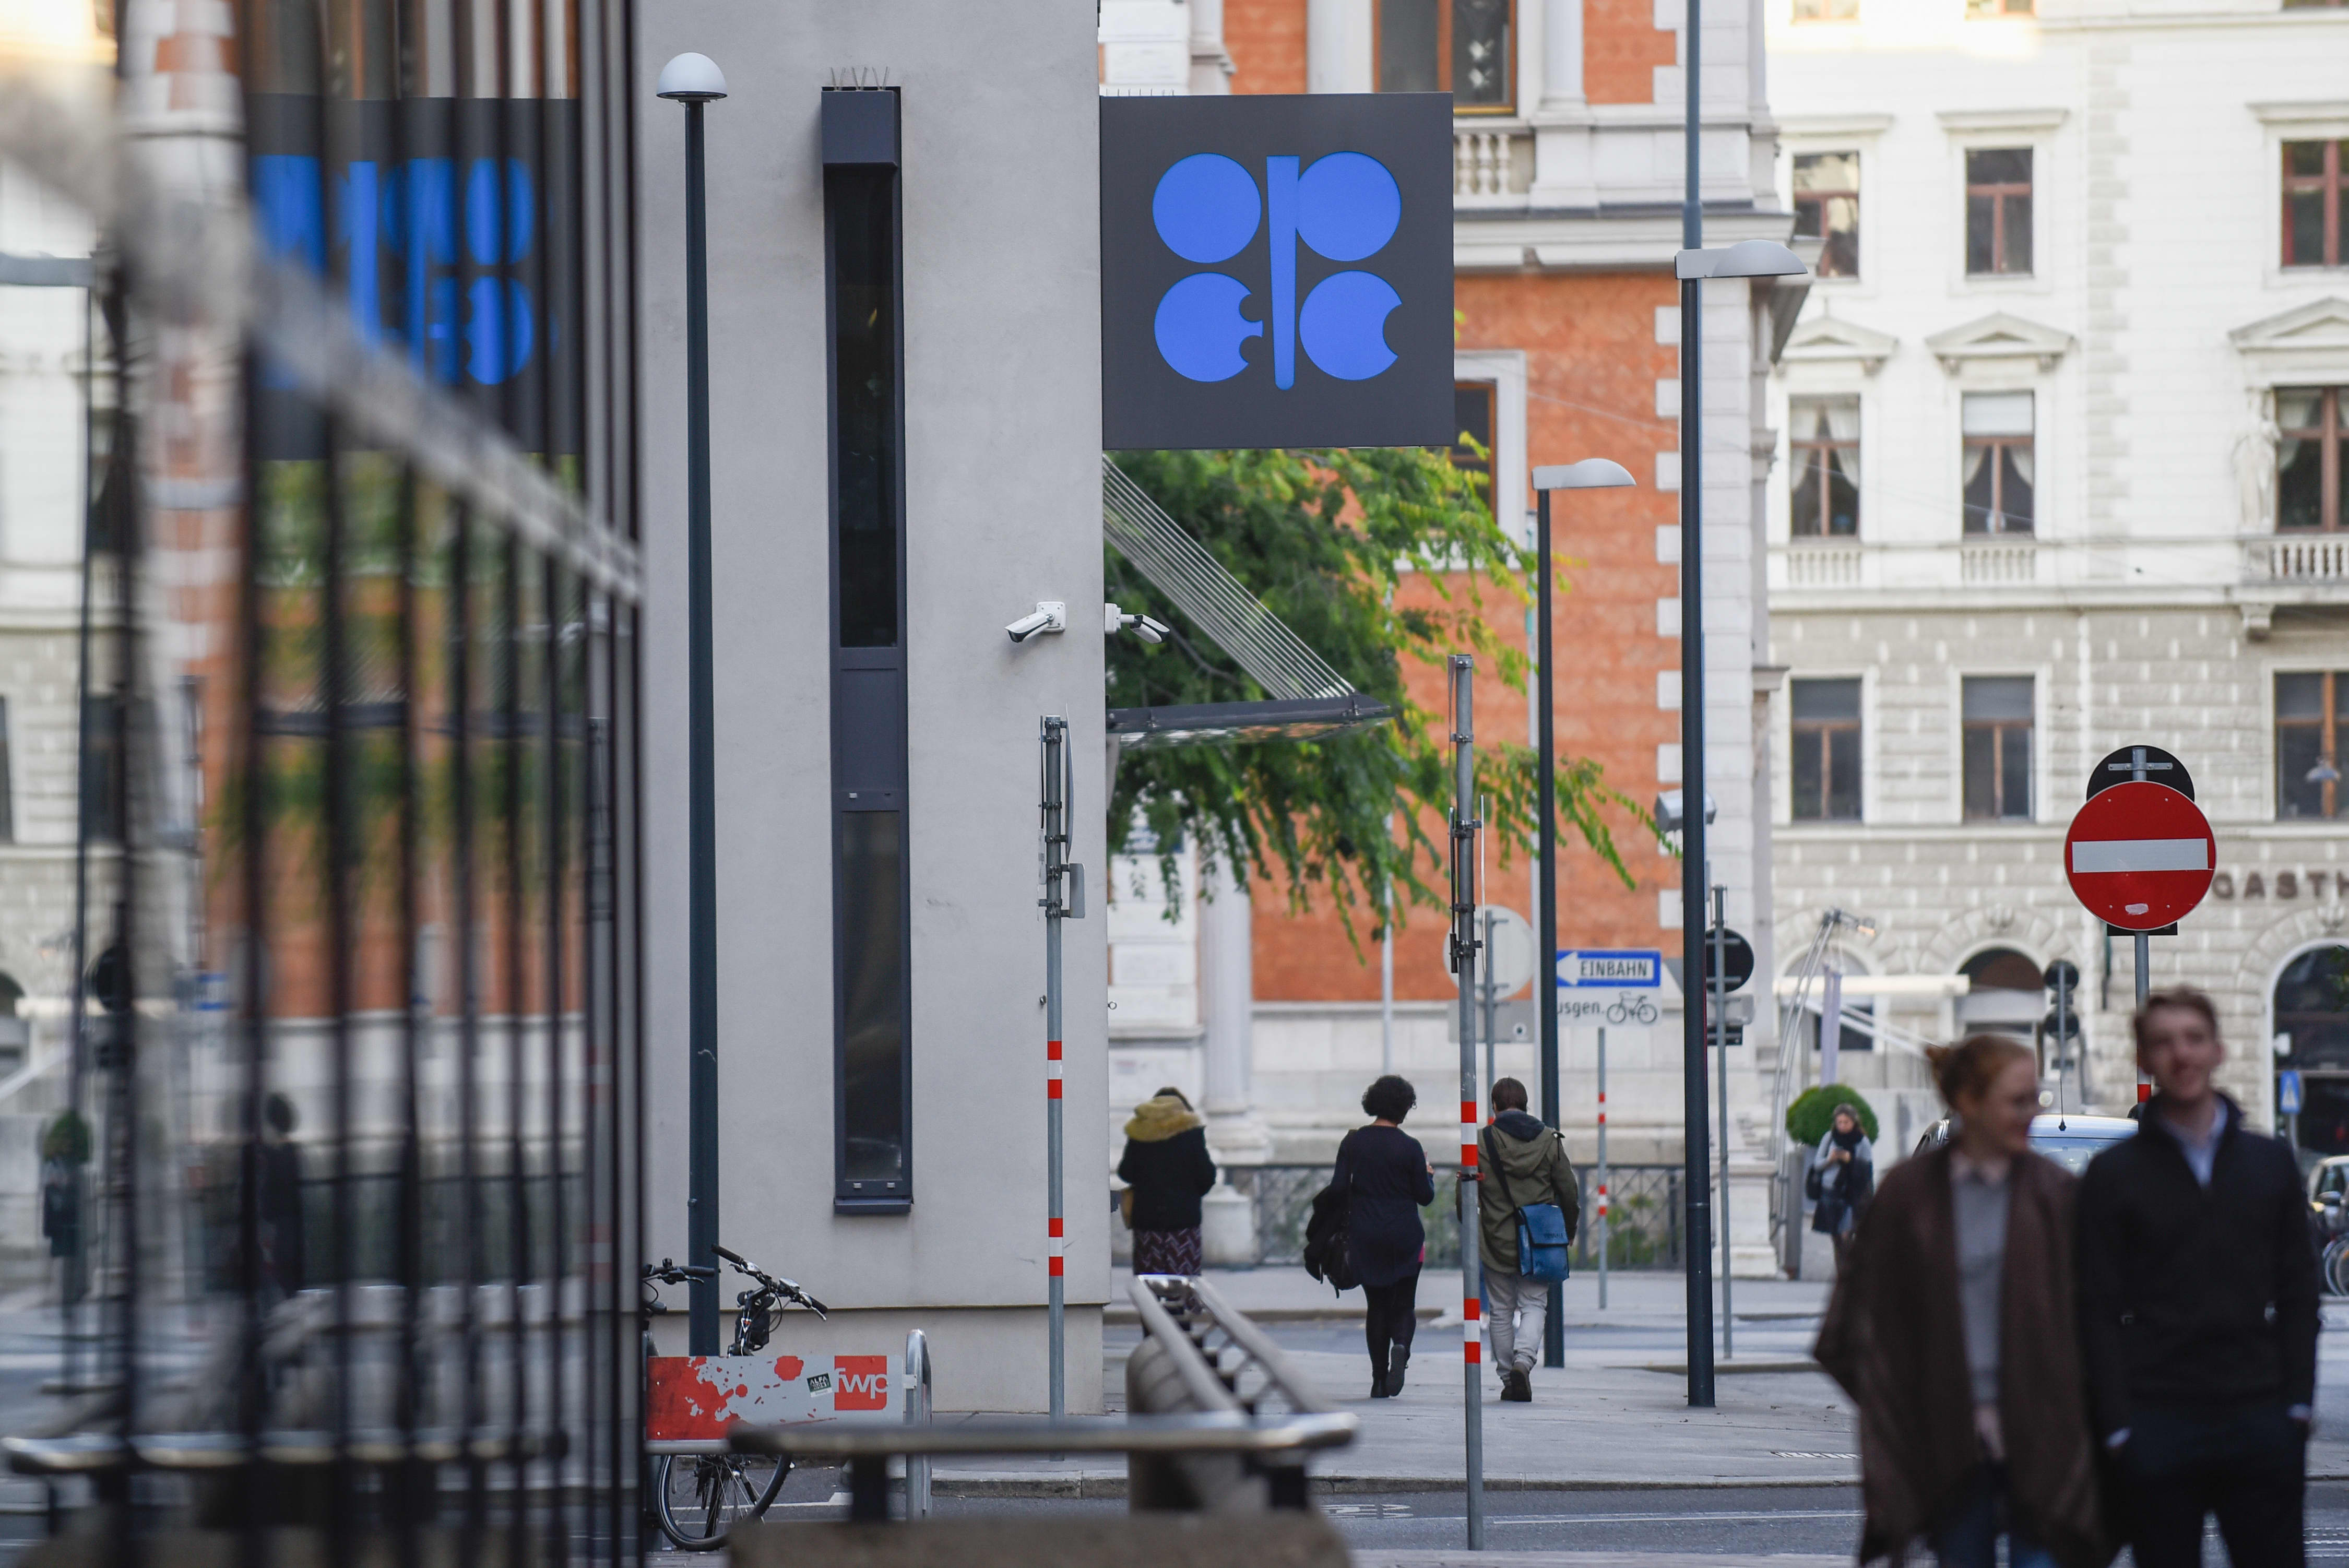 OPEC oil production cuts likely to continue for the 'whole of 2020': Wood Mackenzie